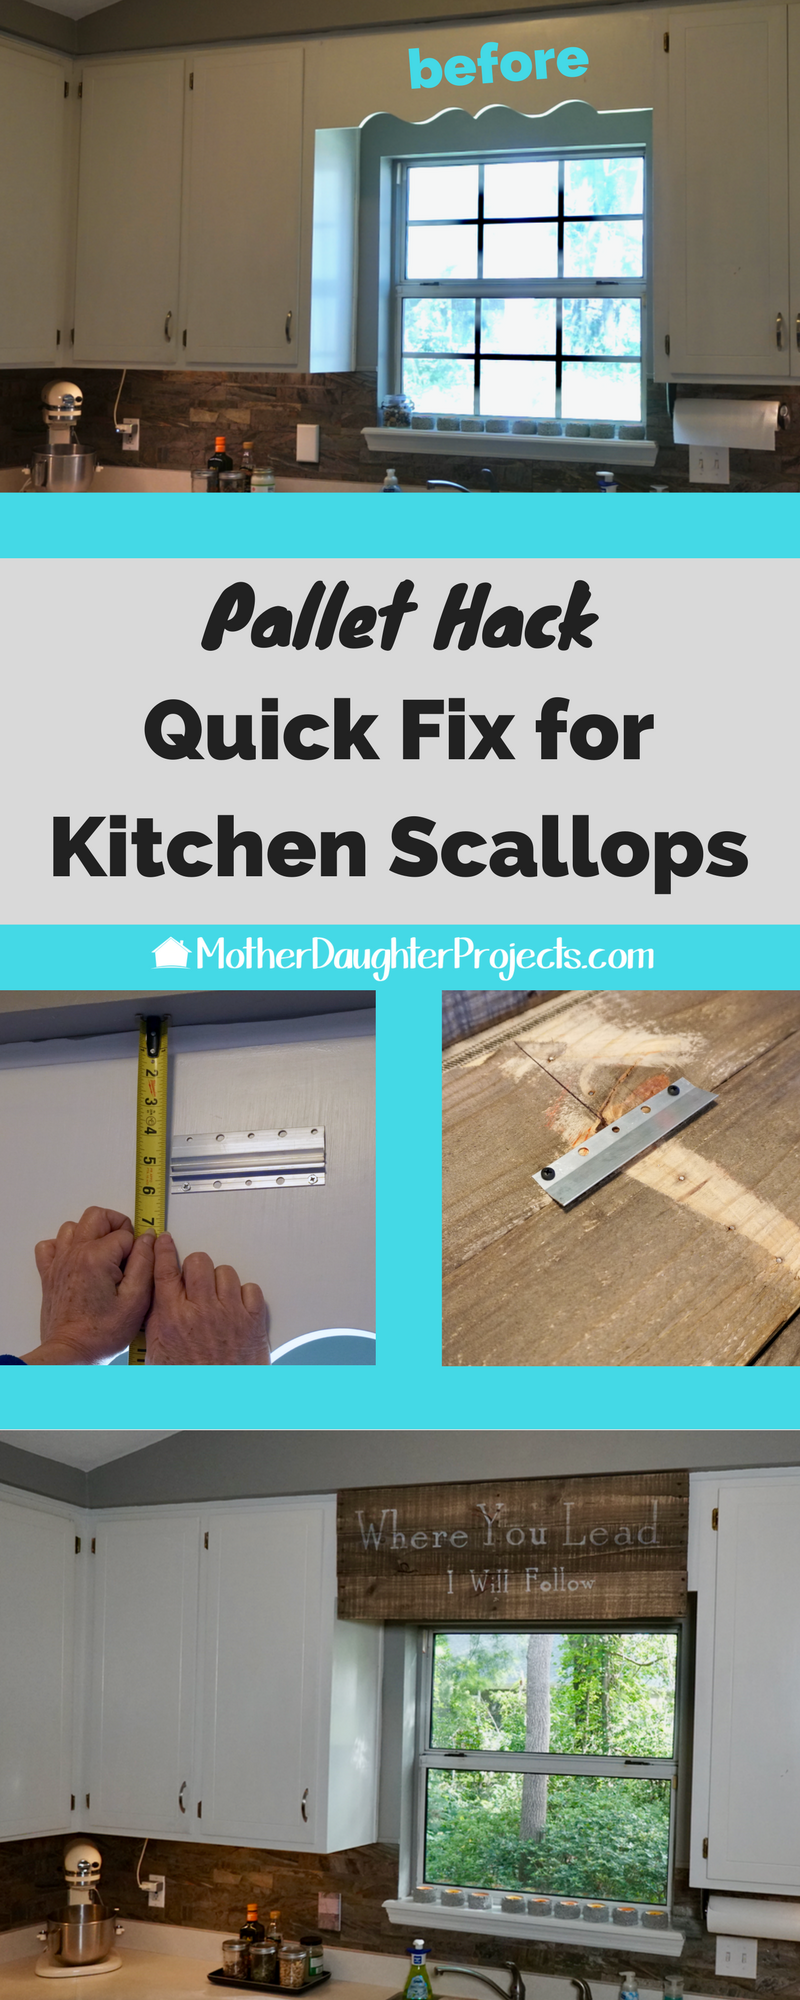 Learn how to DIY a pallet sign to cover or remove the scalloped trim found on many kitchen cabinets. This is a unique window treatment using a pallet hack!